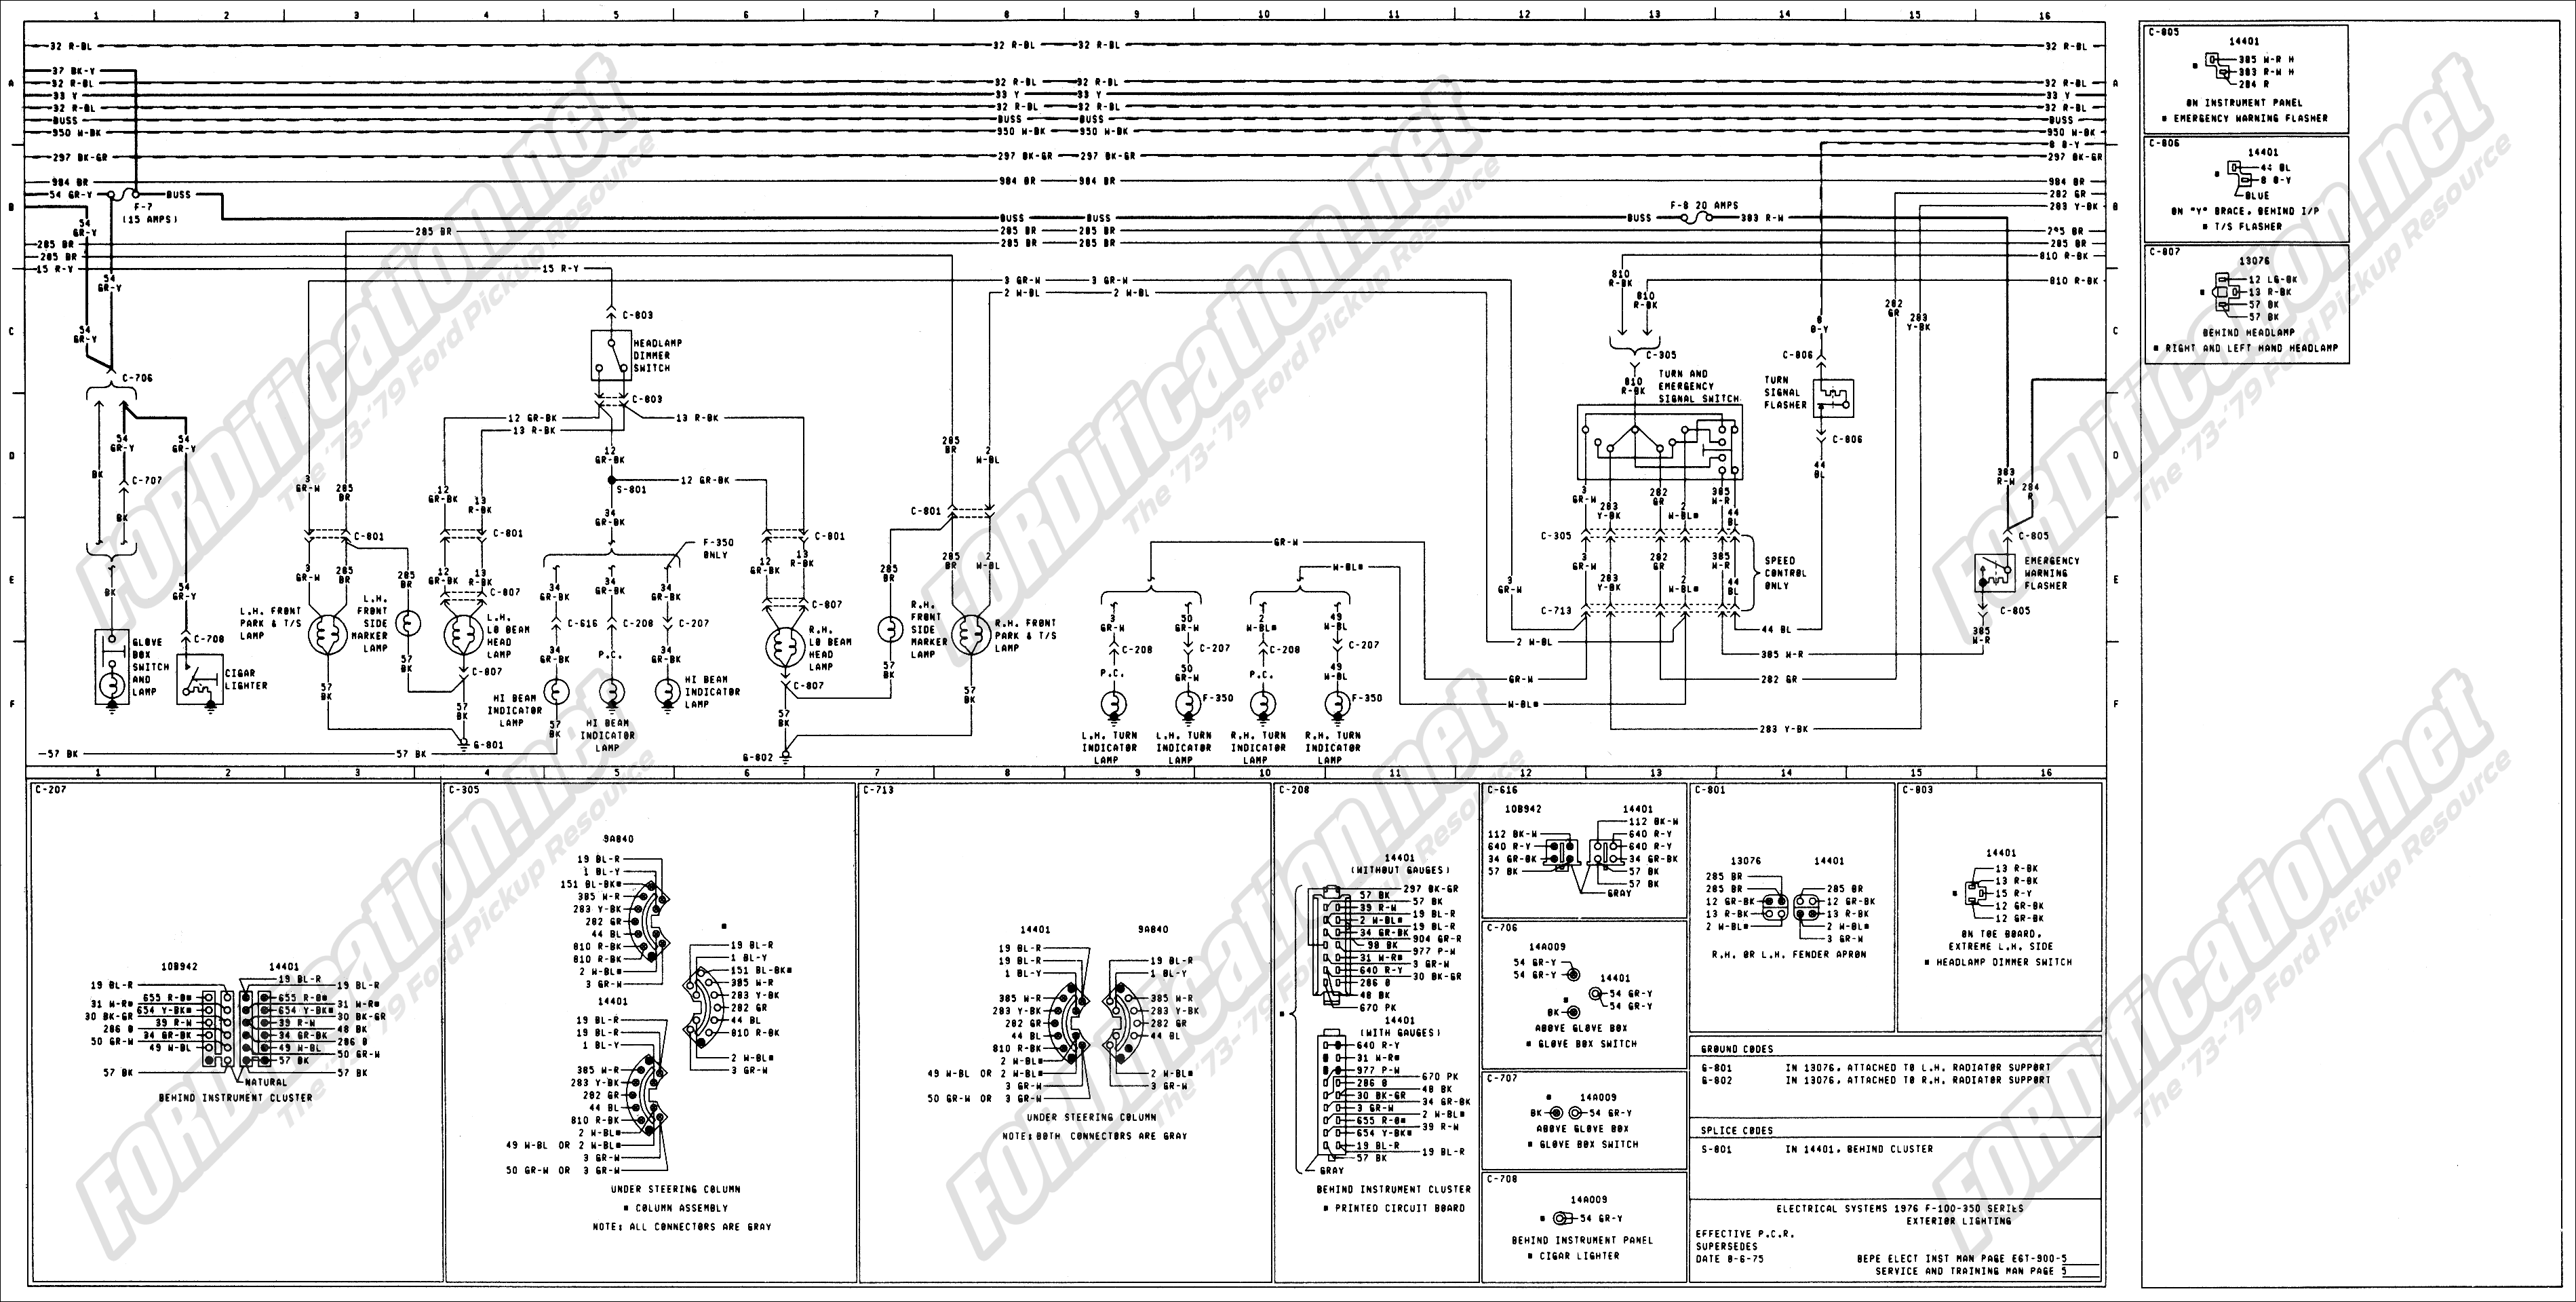 1973 1979 ford truck wiring diagrams & schematics fordification net 1975 ford truck wiring diagrams 1975 Ford Truck Wiring Diagrams #3